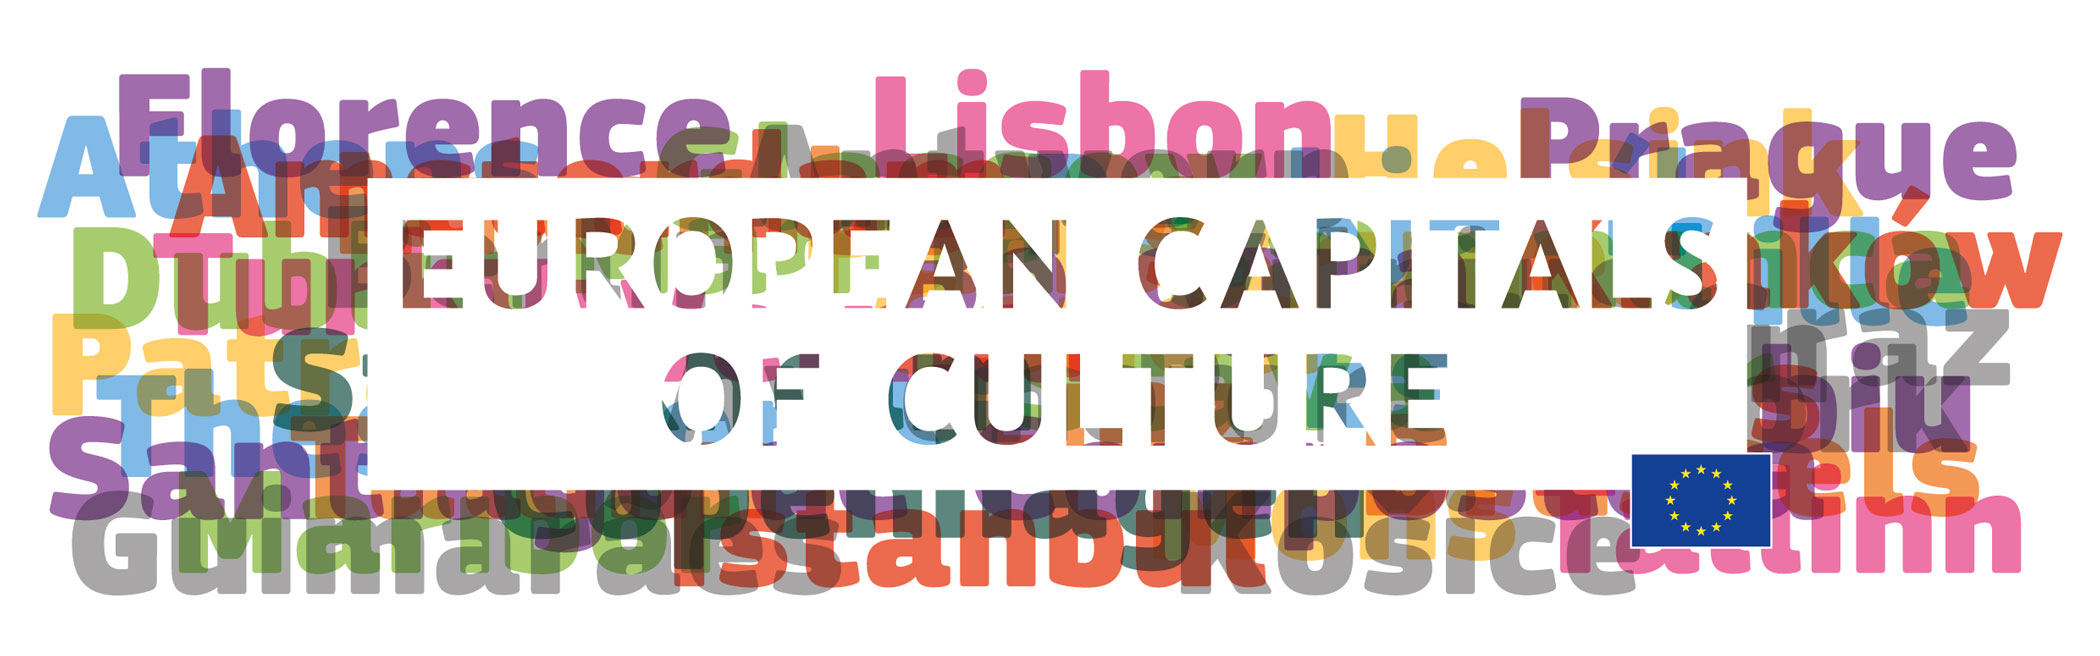 European Capitals of Culture